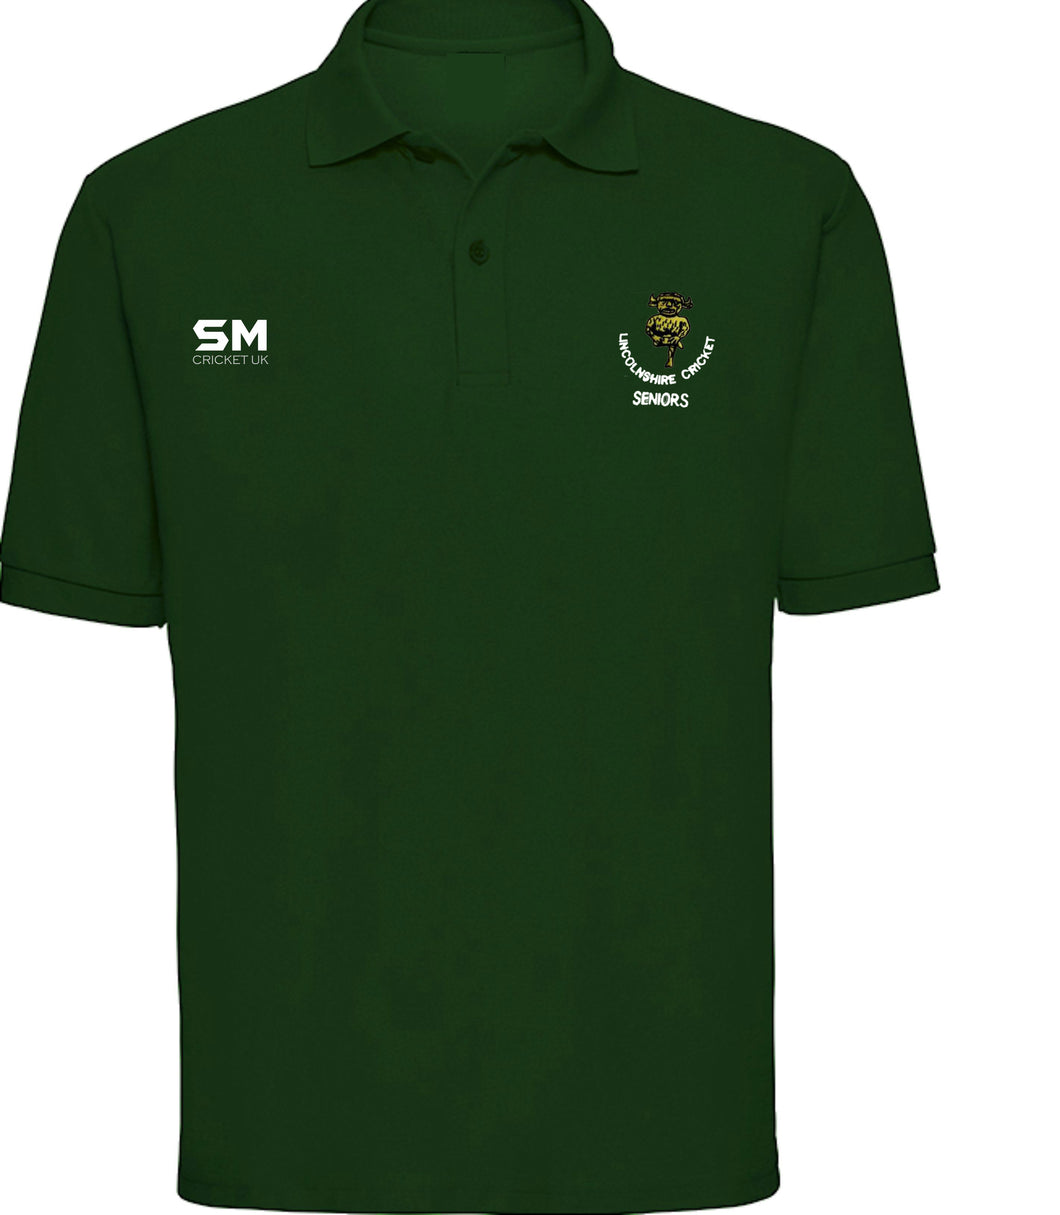 Lincolnshire Cricket - Seniors Performance Polo - Senior